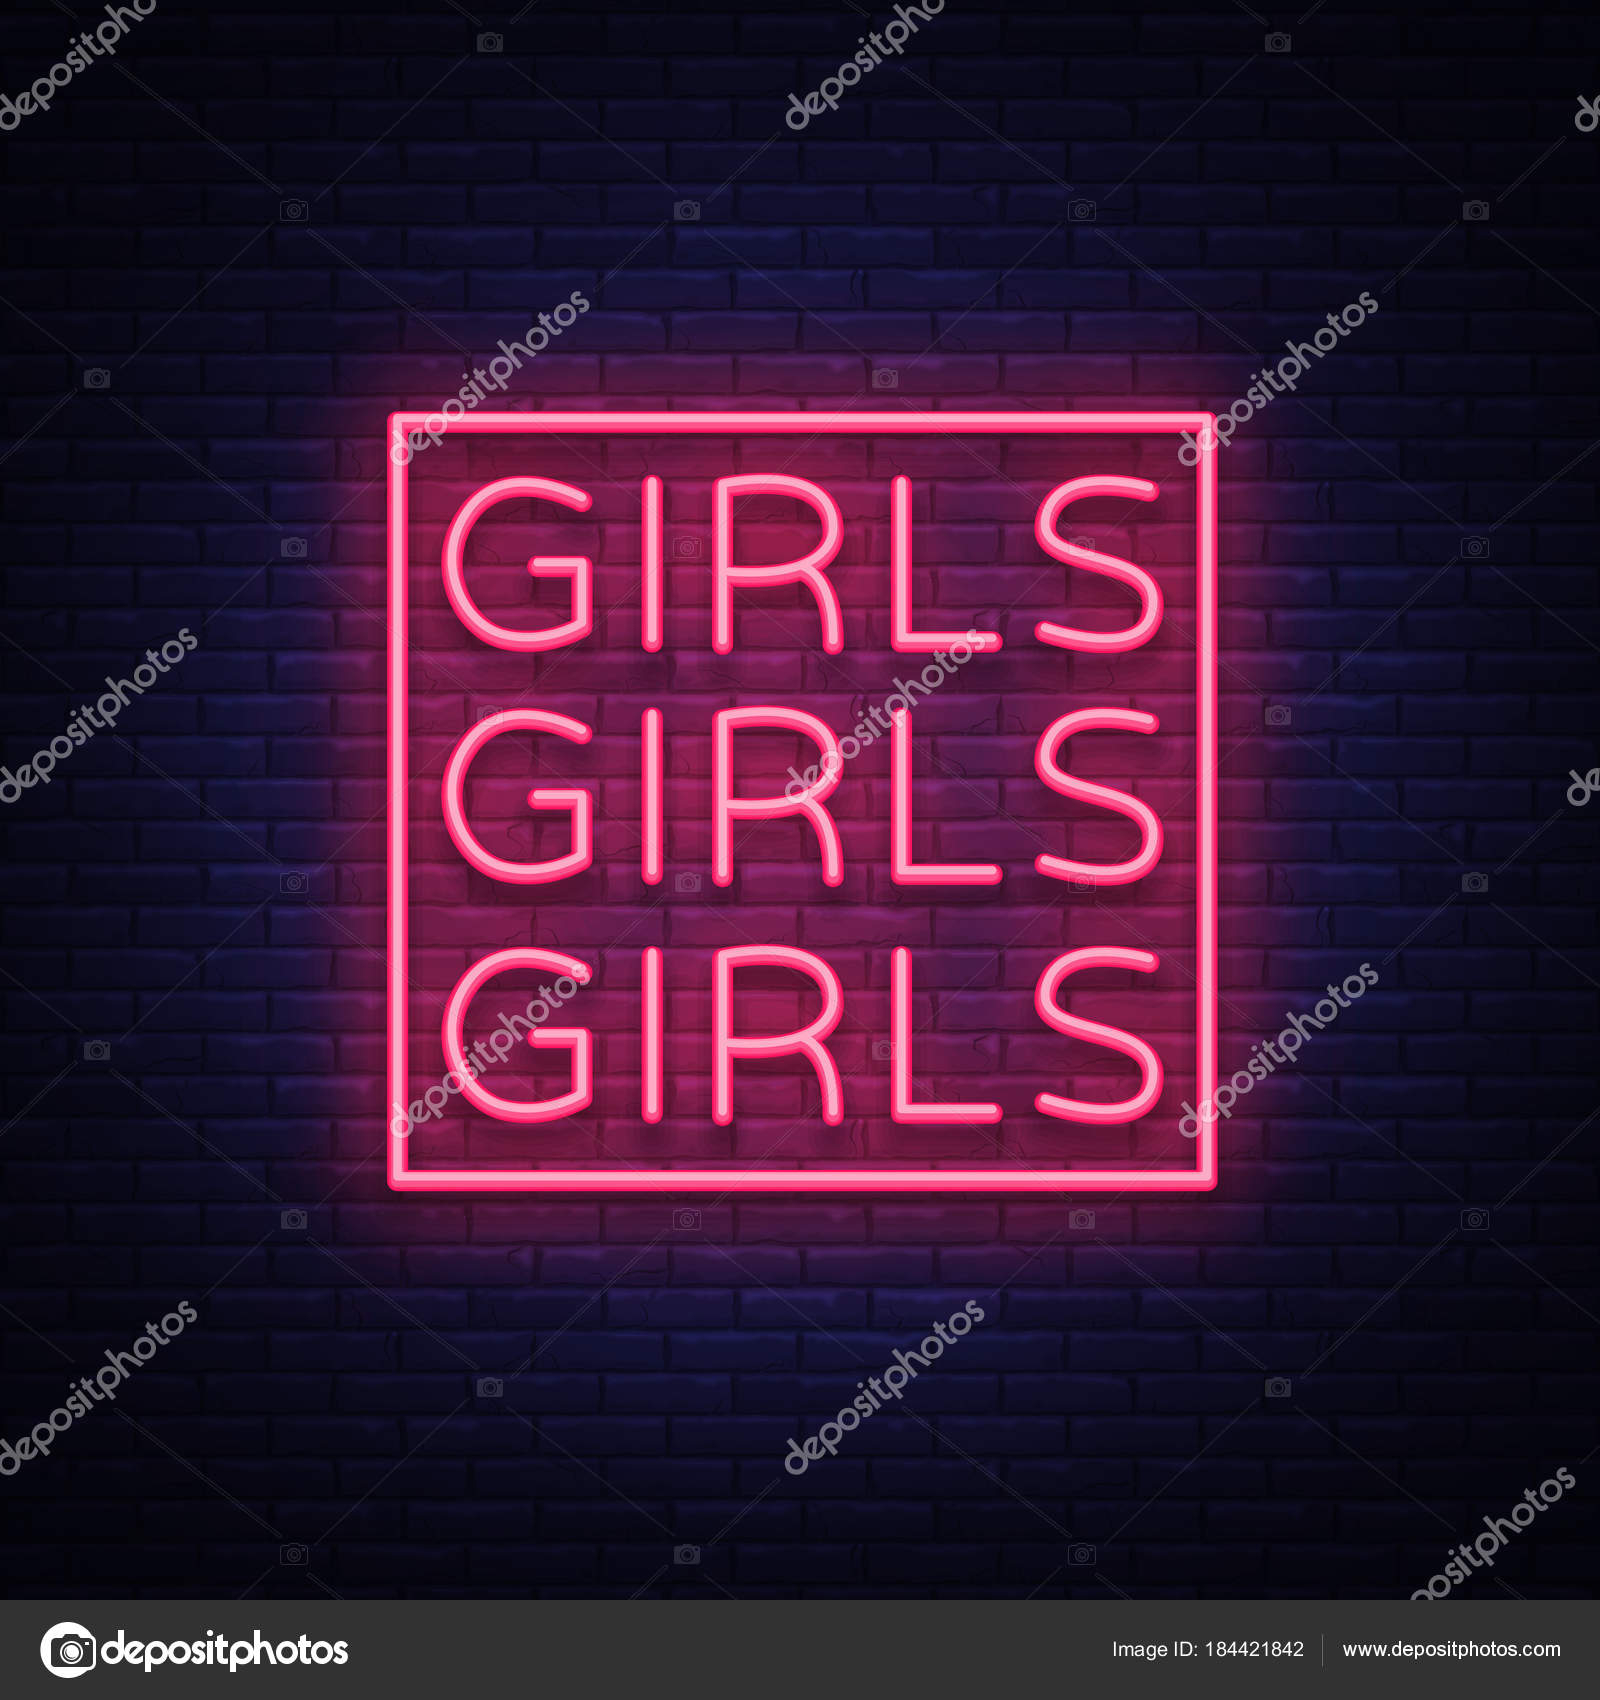 Night light sign, Erotica, Striptease, Neon banner for strip club. Adult  show. Vector illustration.